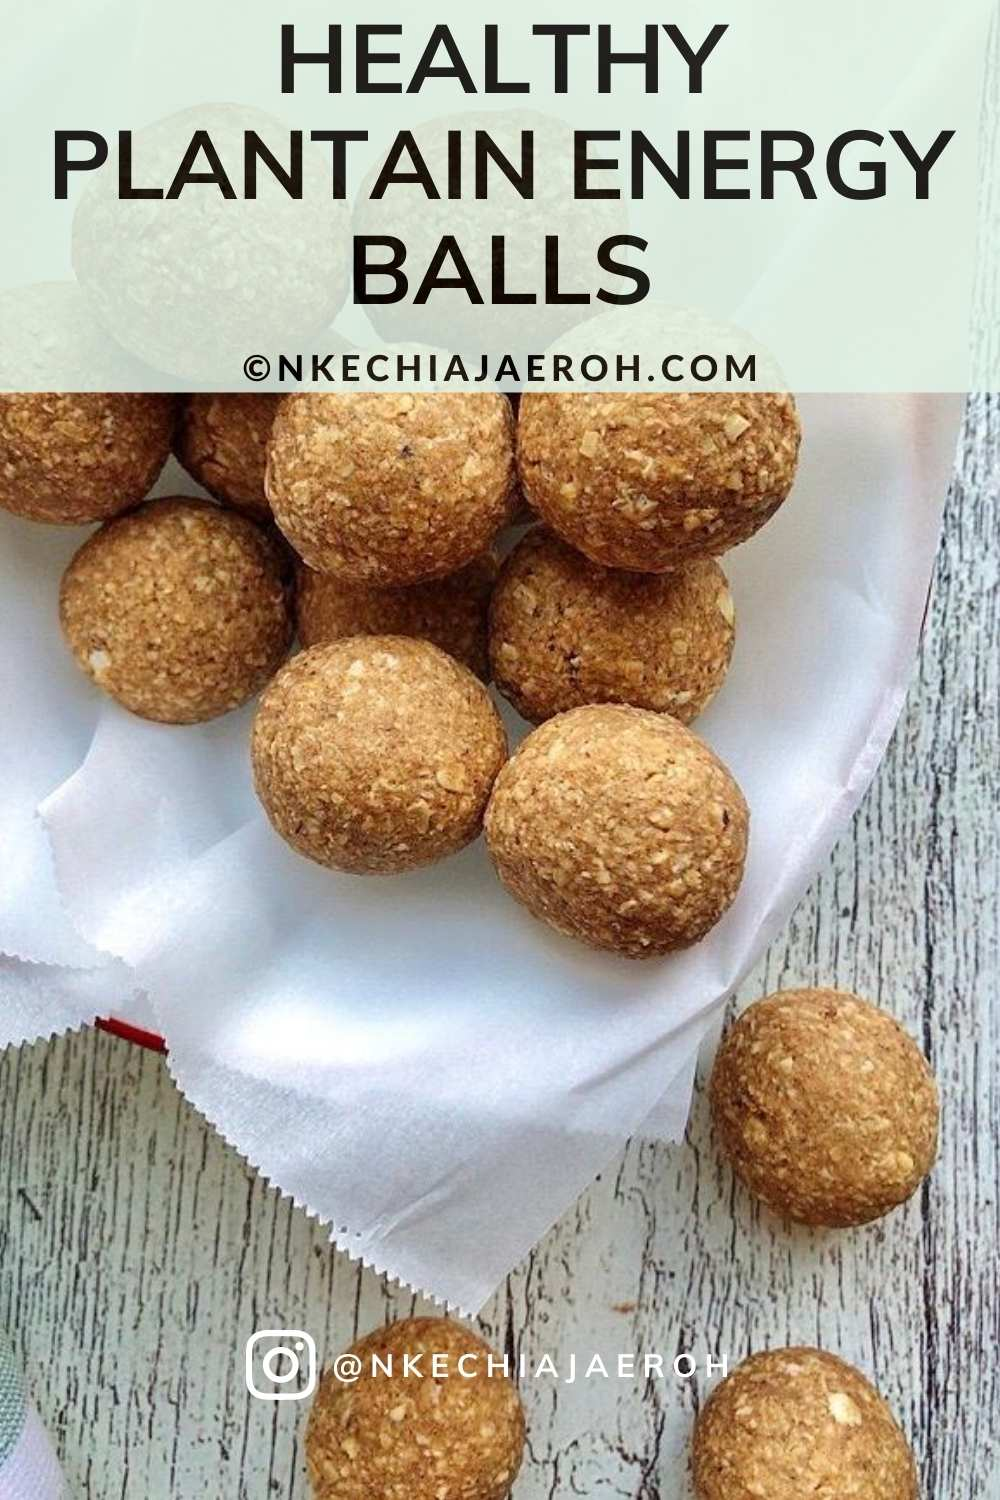 Healthy sweet yellow ripe plantain energy balls. Vegan, gluten-free, paleo-friendly, low carb, sweet, savory, and insanely delicious. These healthy protein bites require only three main ingredients – ripe (sweet yellow) plantain, oats, and nut butter. Healthy vegan snacks excellent pre and post work out snacks. On the go and kid-friendly snacks. Healthy bites for appetizers, side dishes, and dessert. #plantainballs #howtomakeplantainballs #oatmeal #healthyrecipes #energybites #energyballs